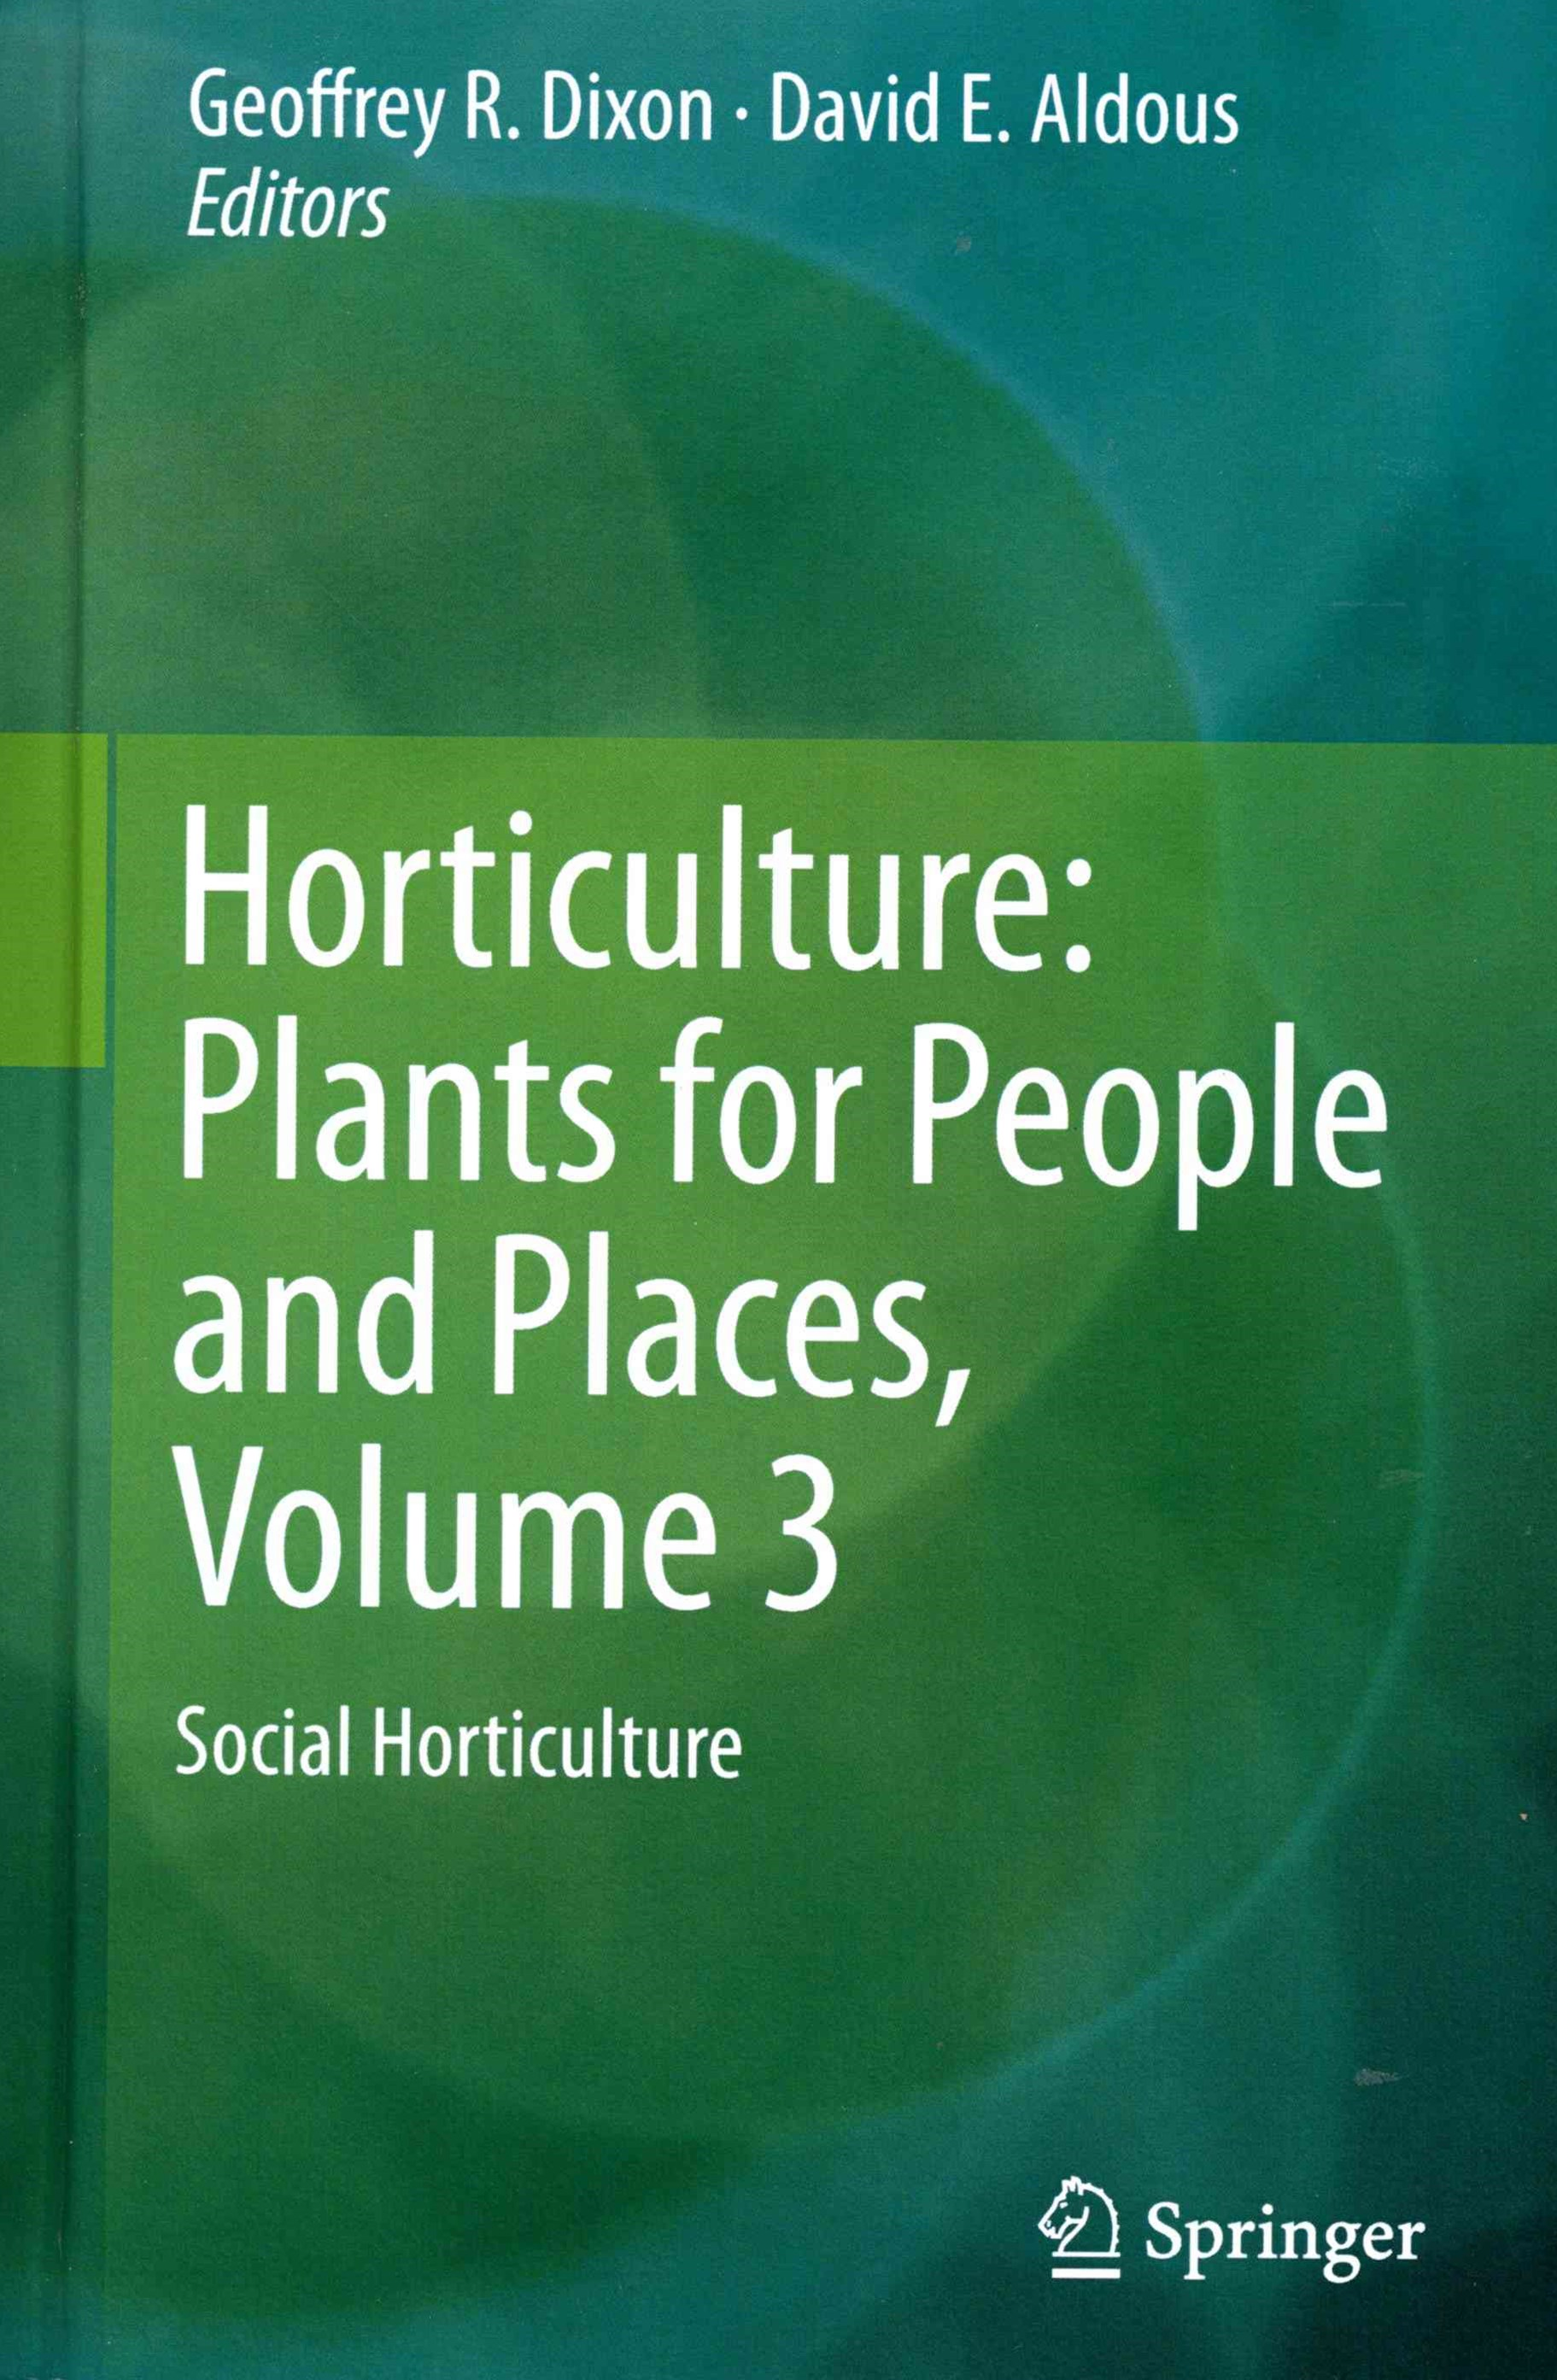 Horticulture: Plants for People and Places, Volume 3